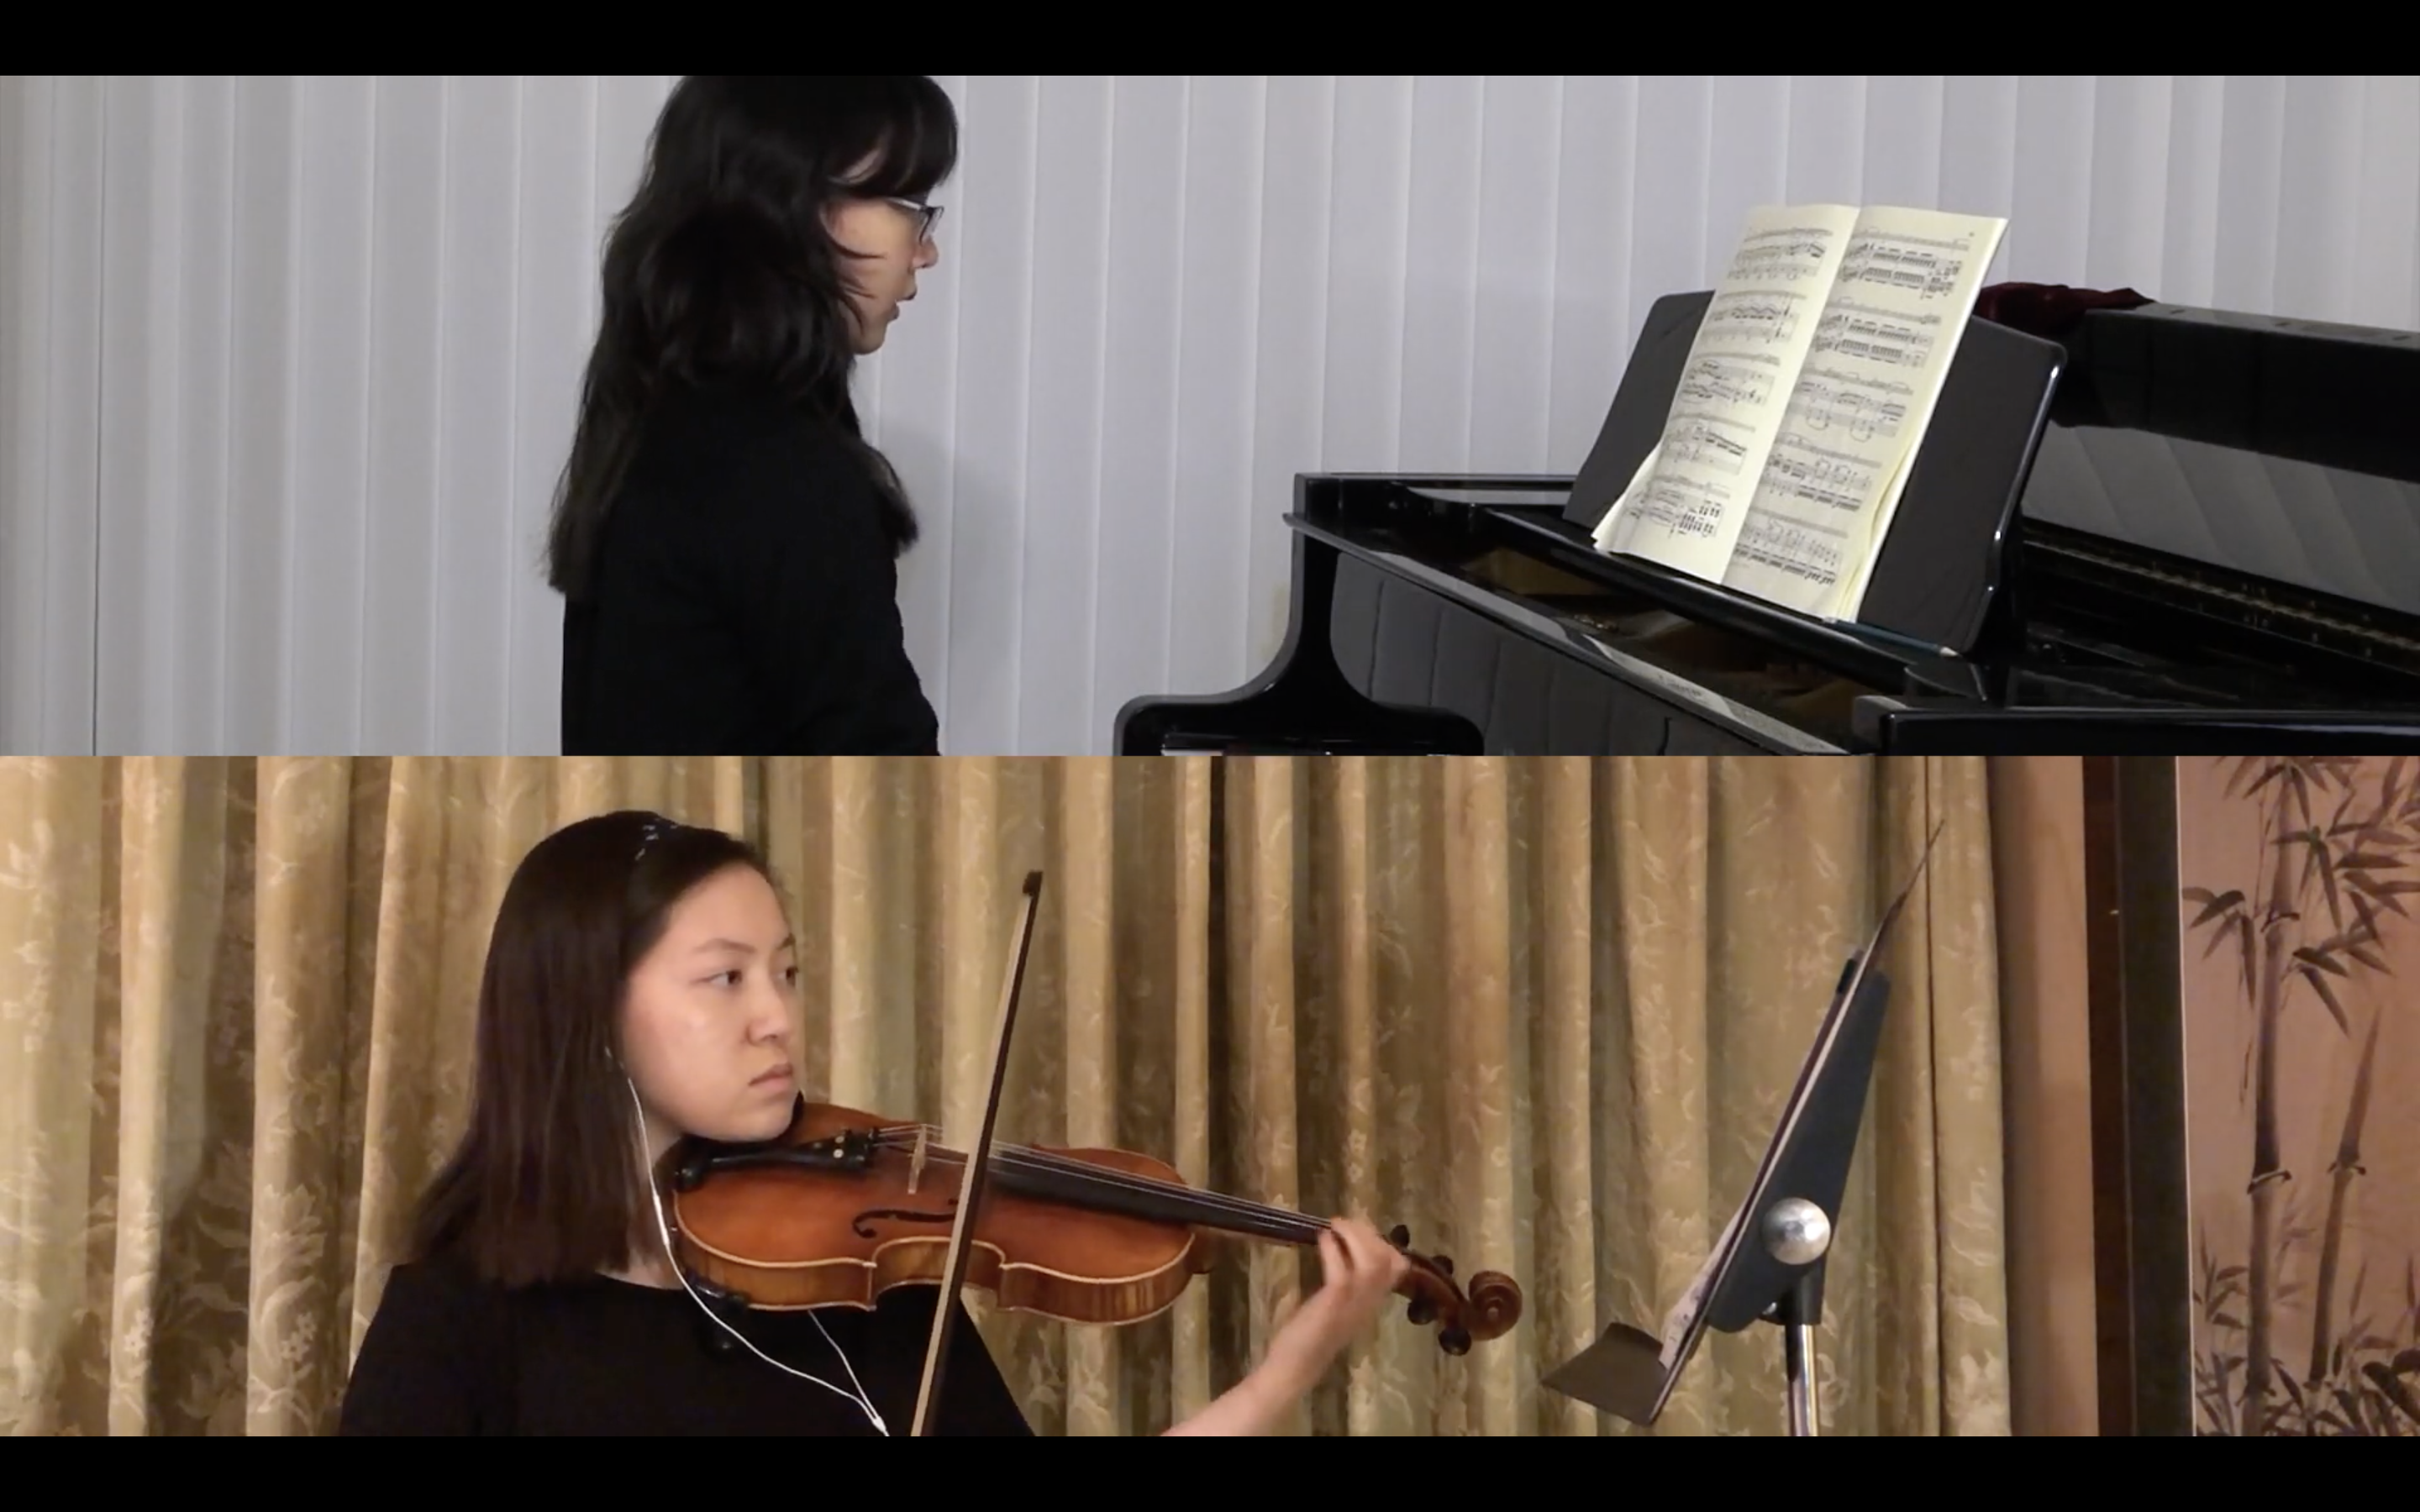 Zoom screens show Georgetown University Chamber Music Ensembles Program student pianist performing from Hong Kong at top, and violinist in the U.S. performing below.